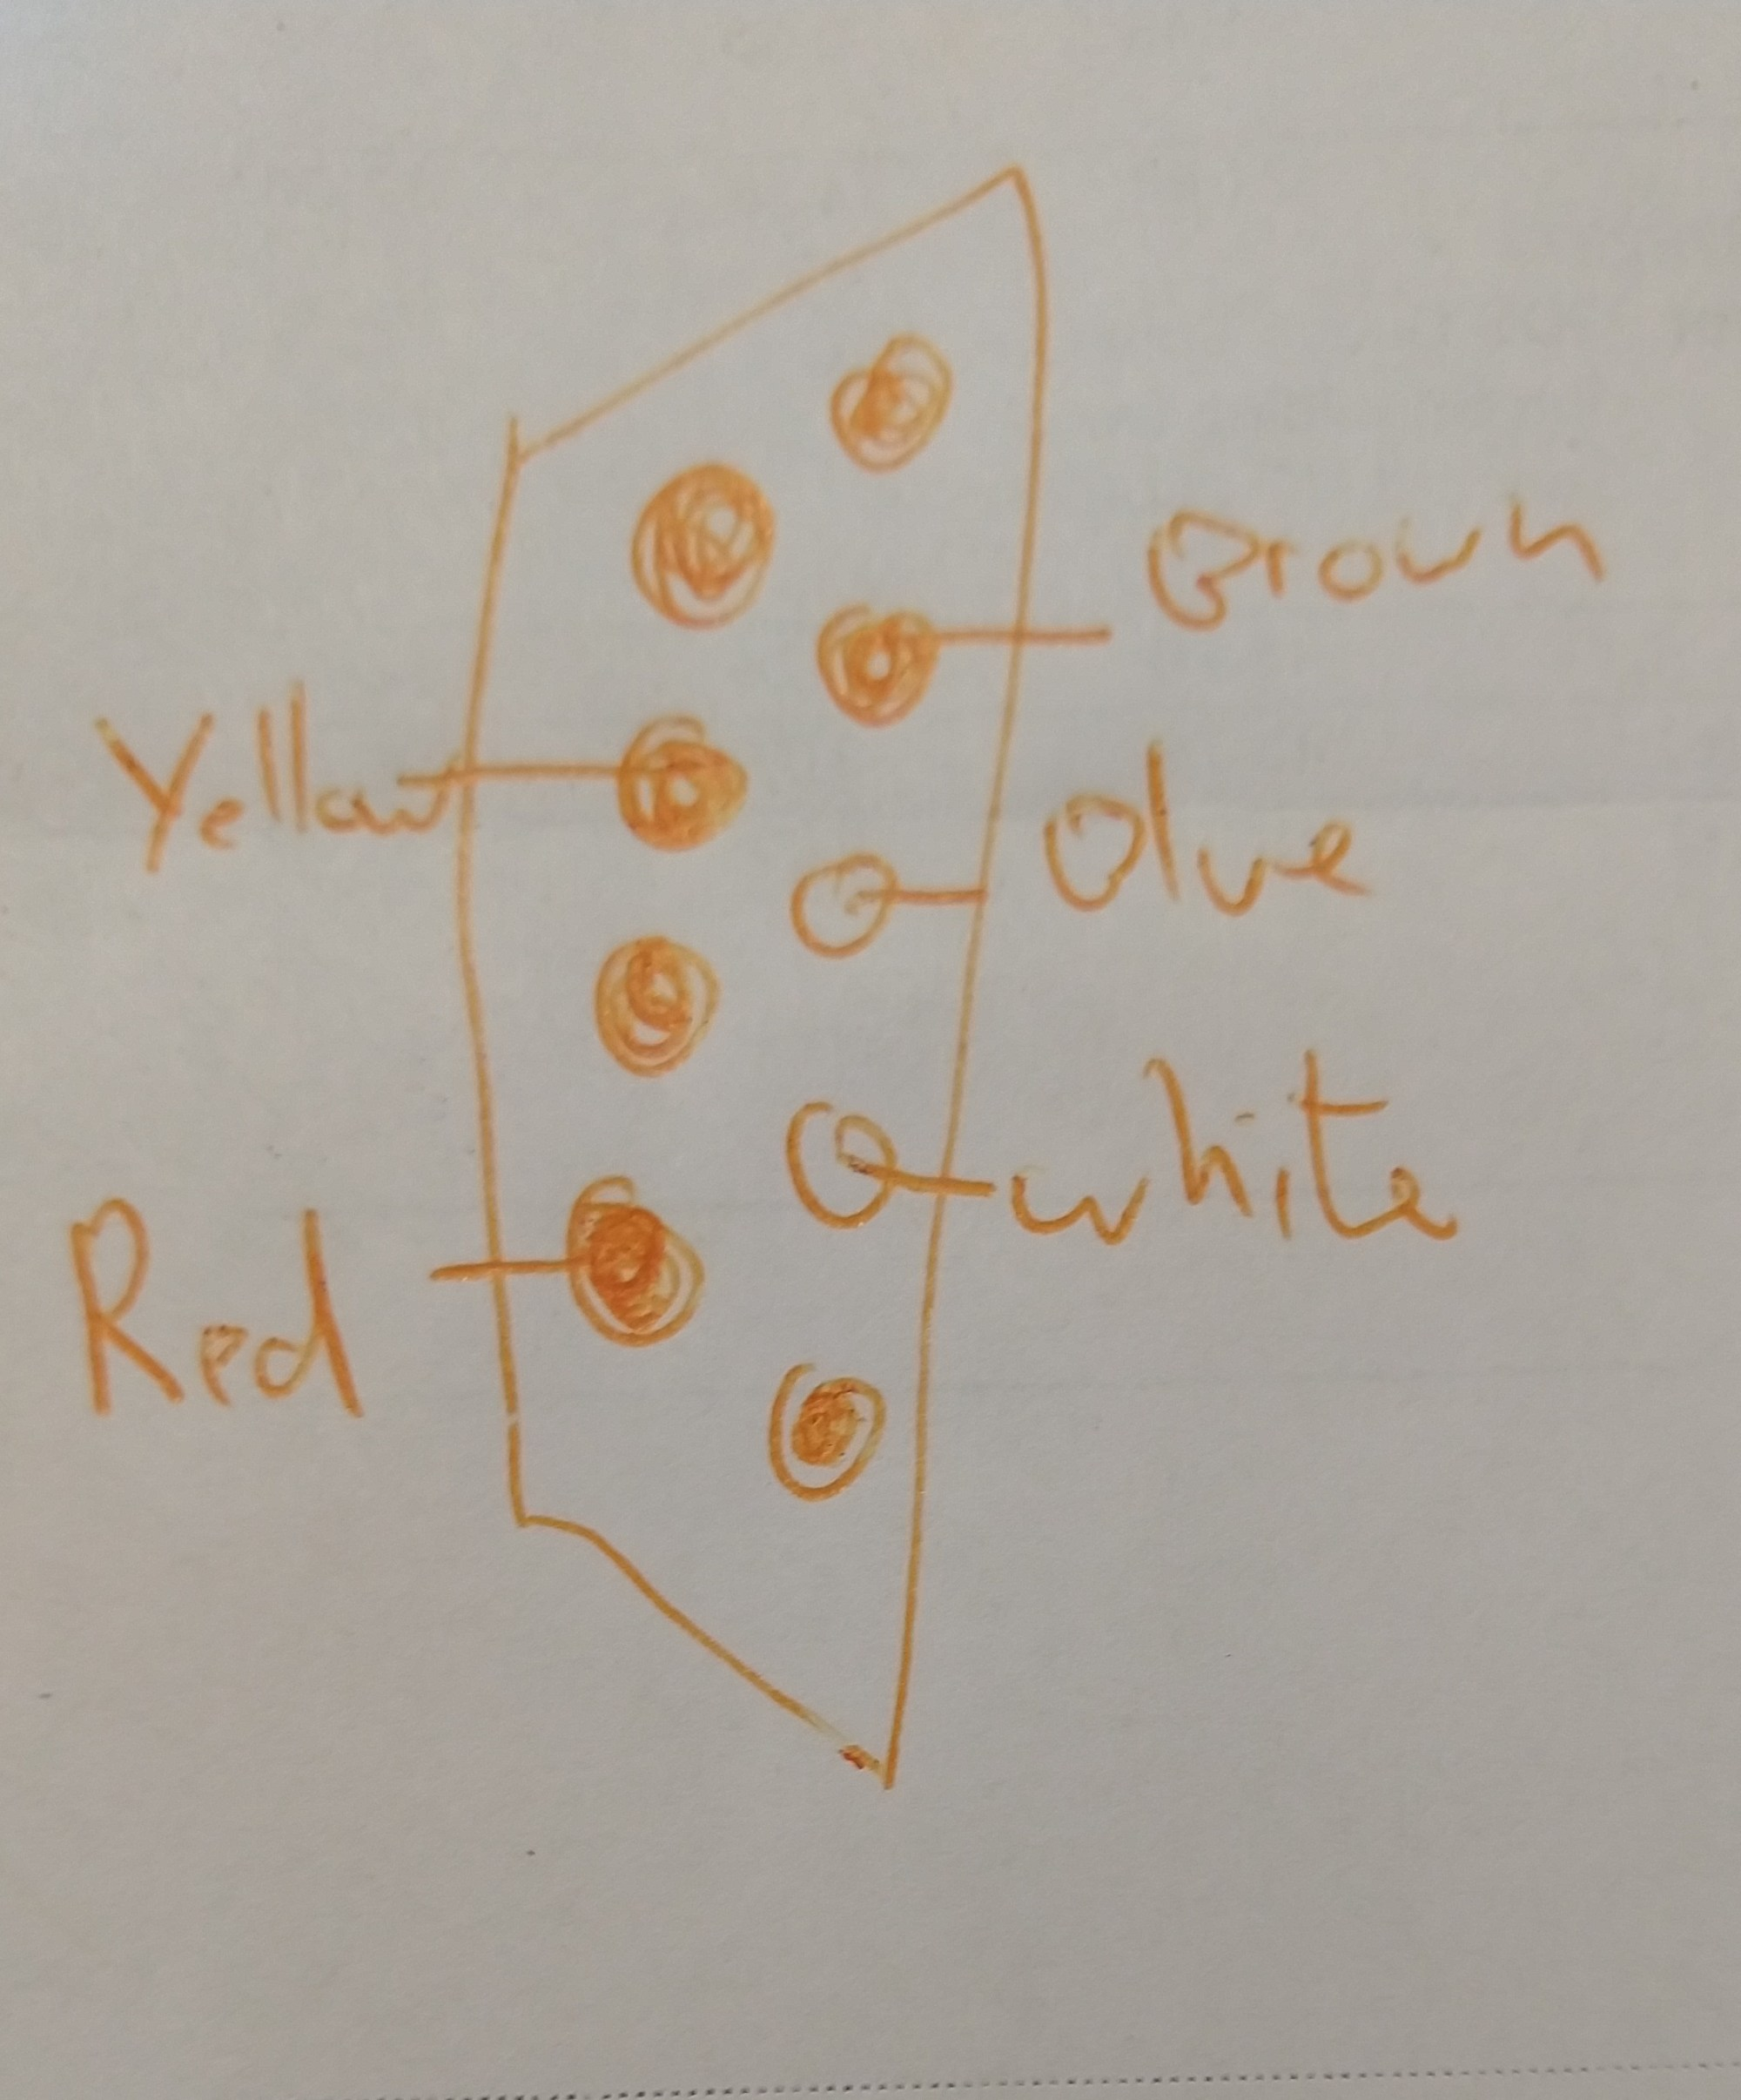 hight resolution of the pinout for the wire colors at the end of the cable is as follows